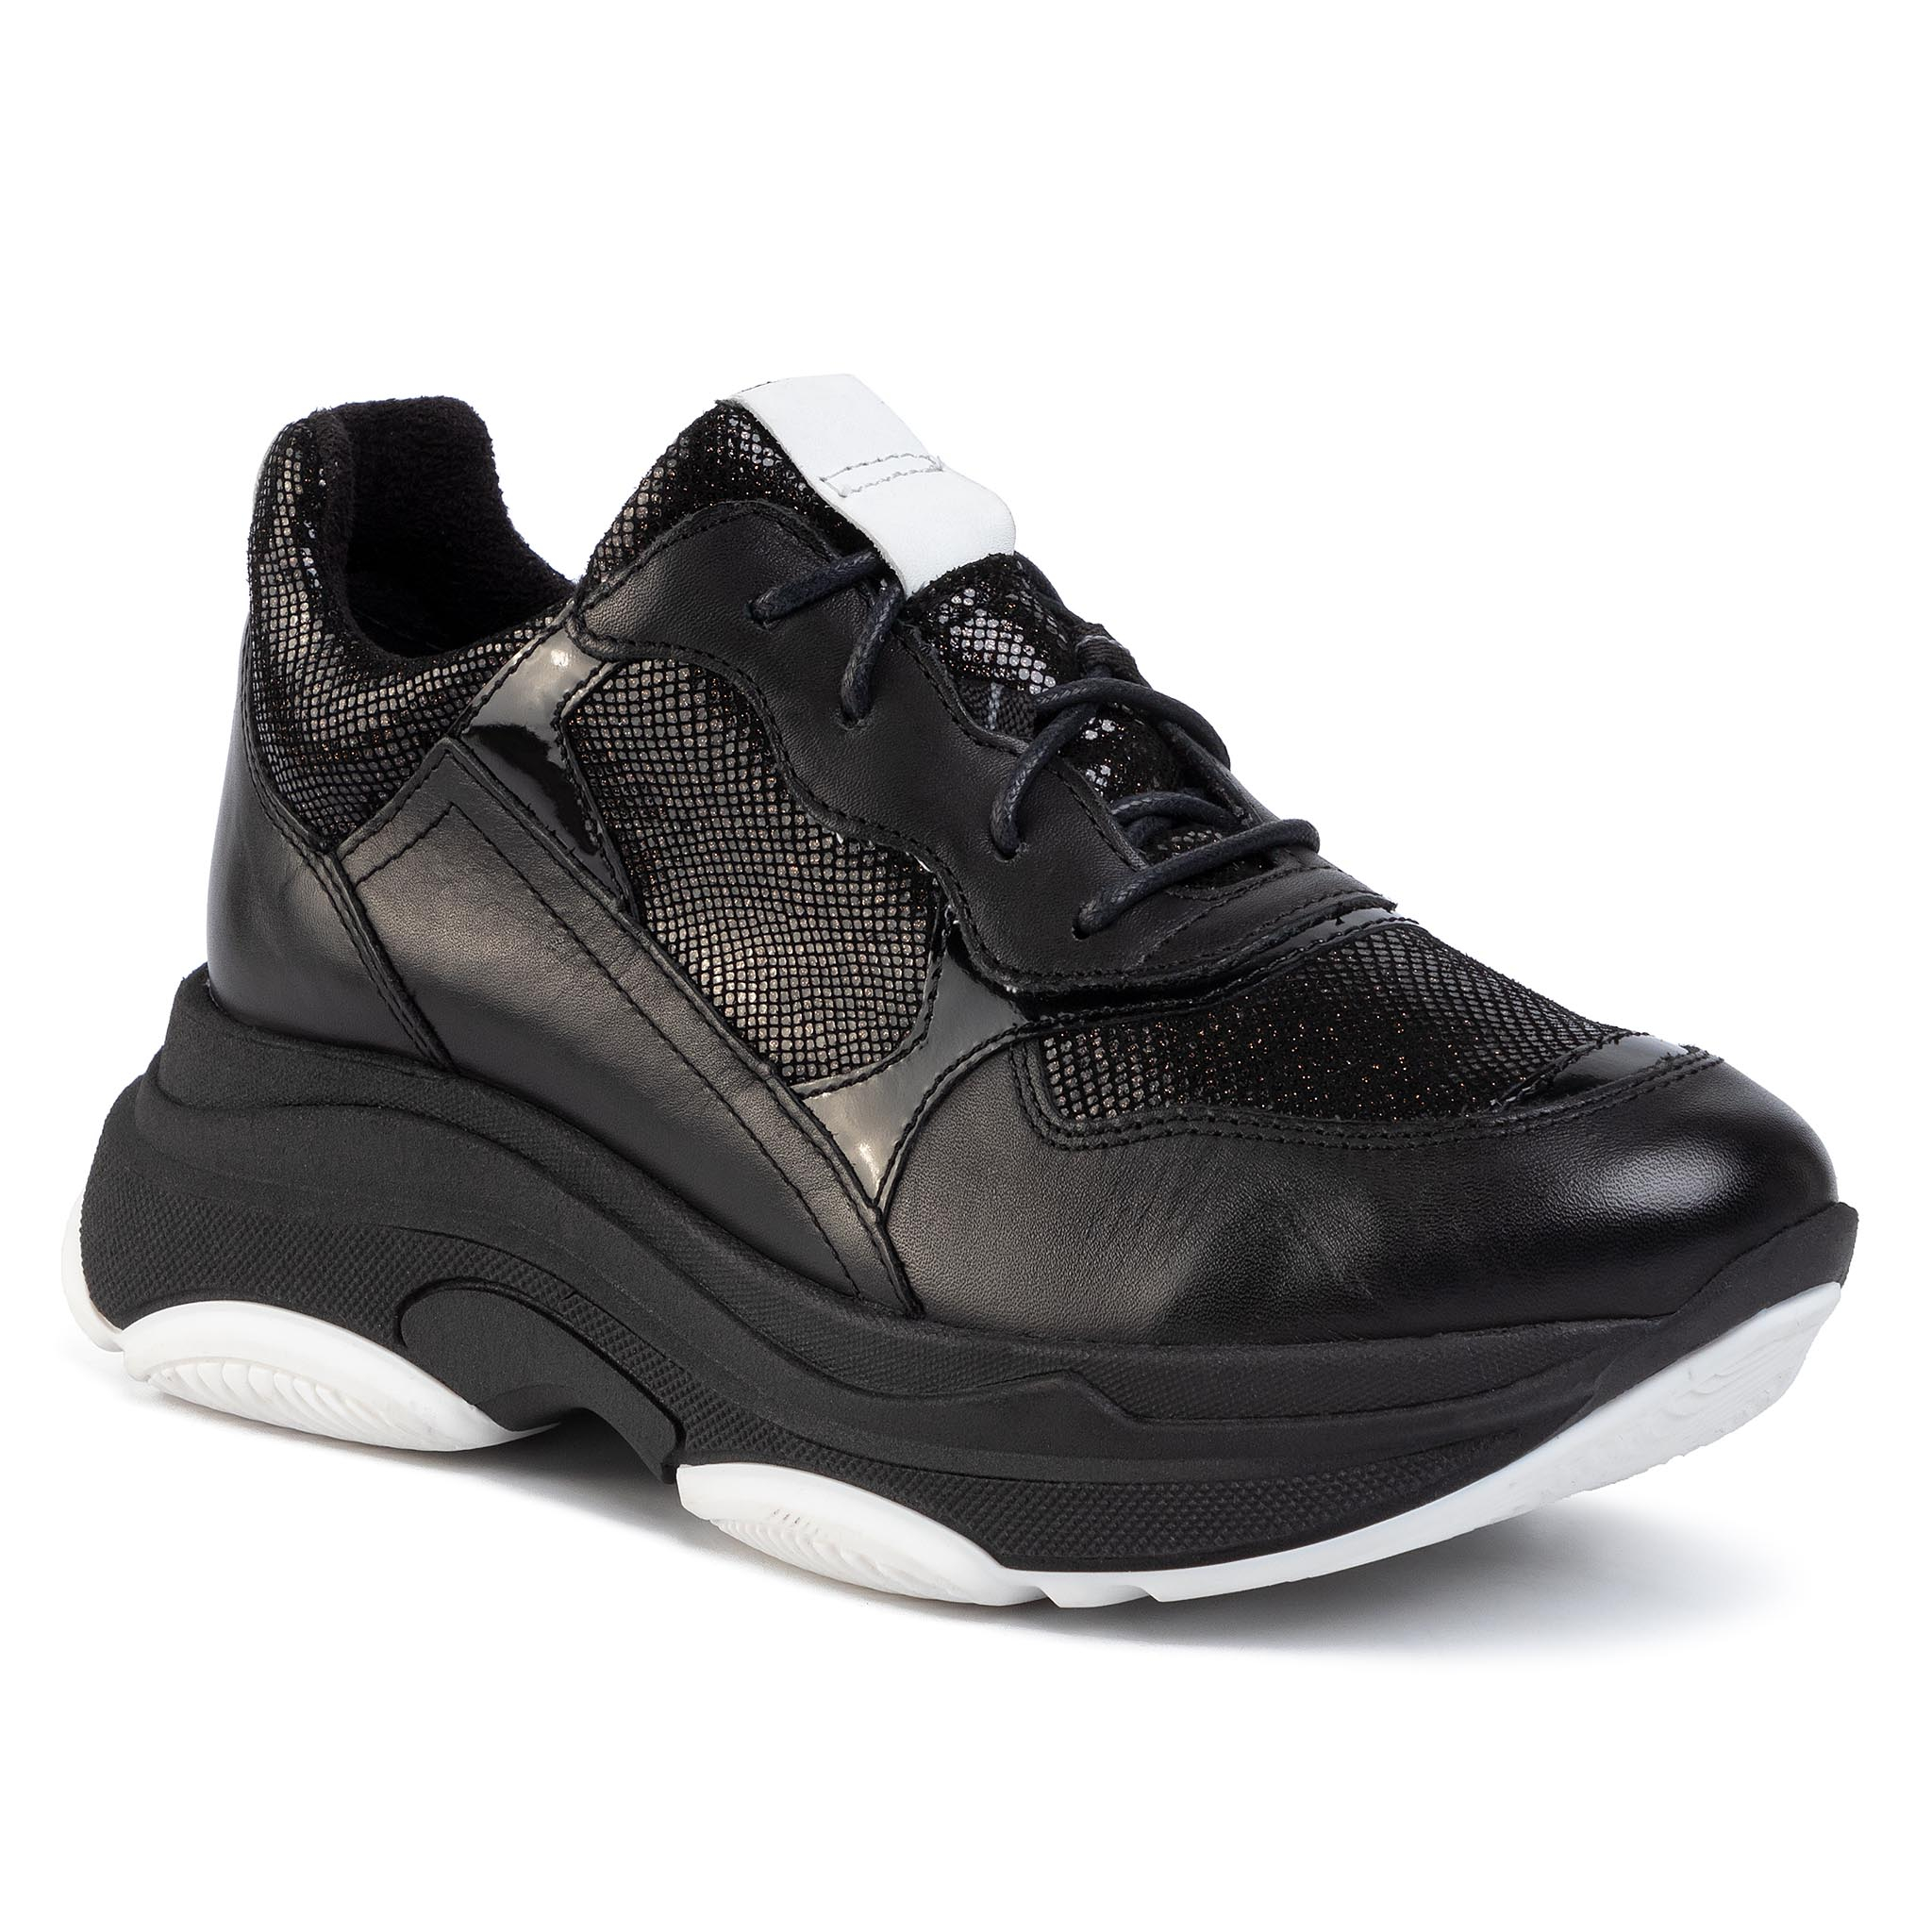 Sneakers GINO ROSSI - RST-BALE-02 Black